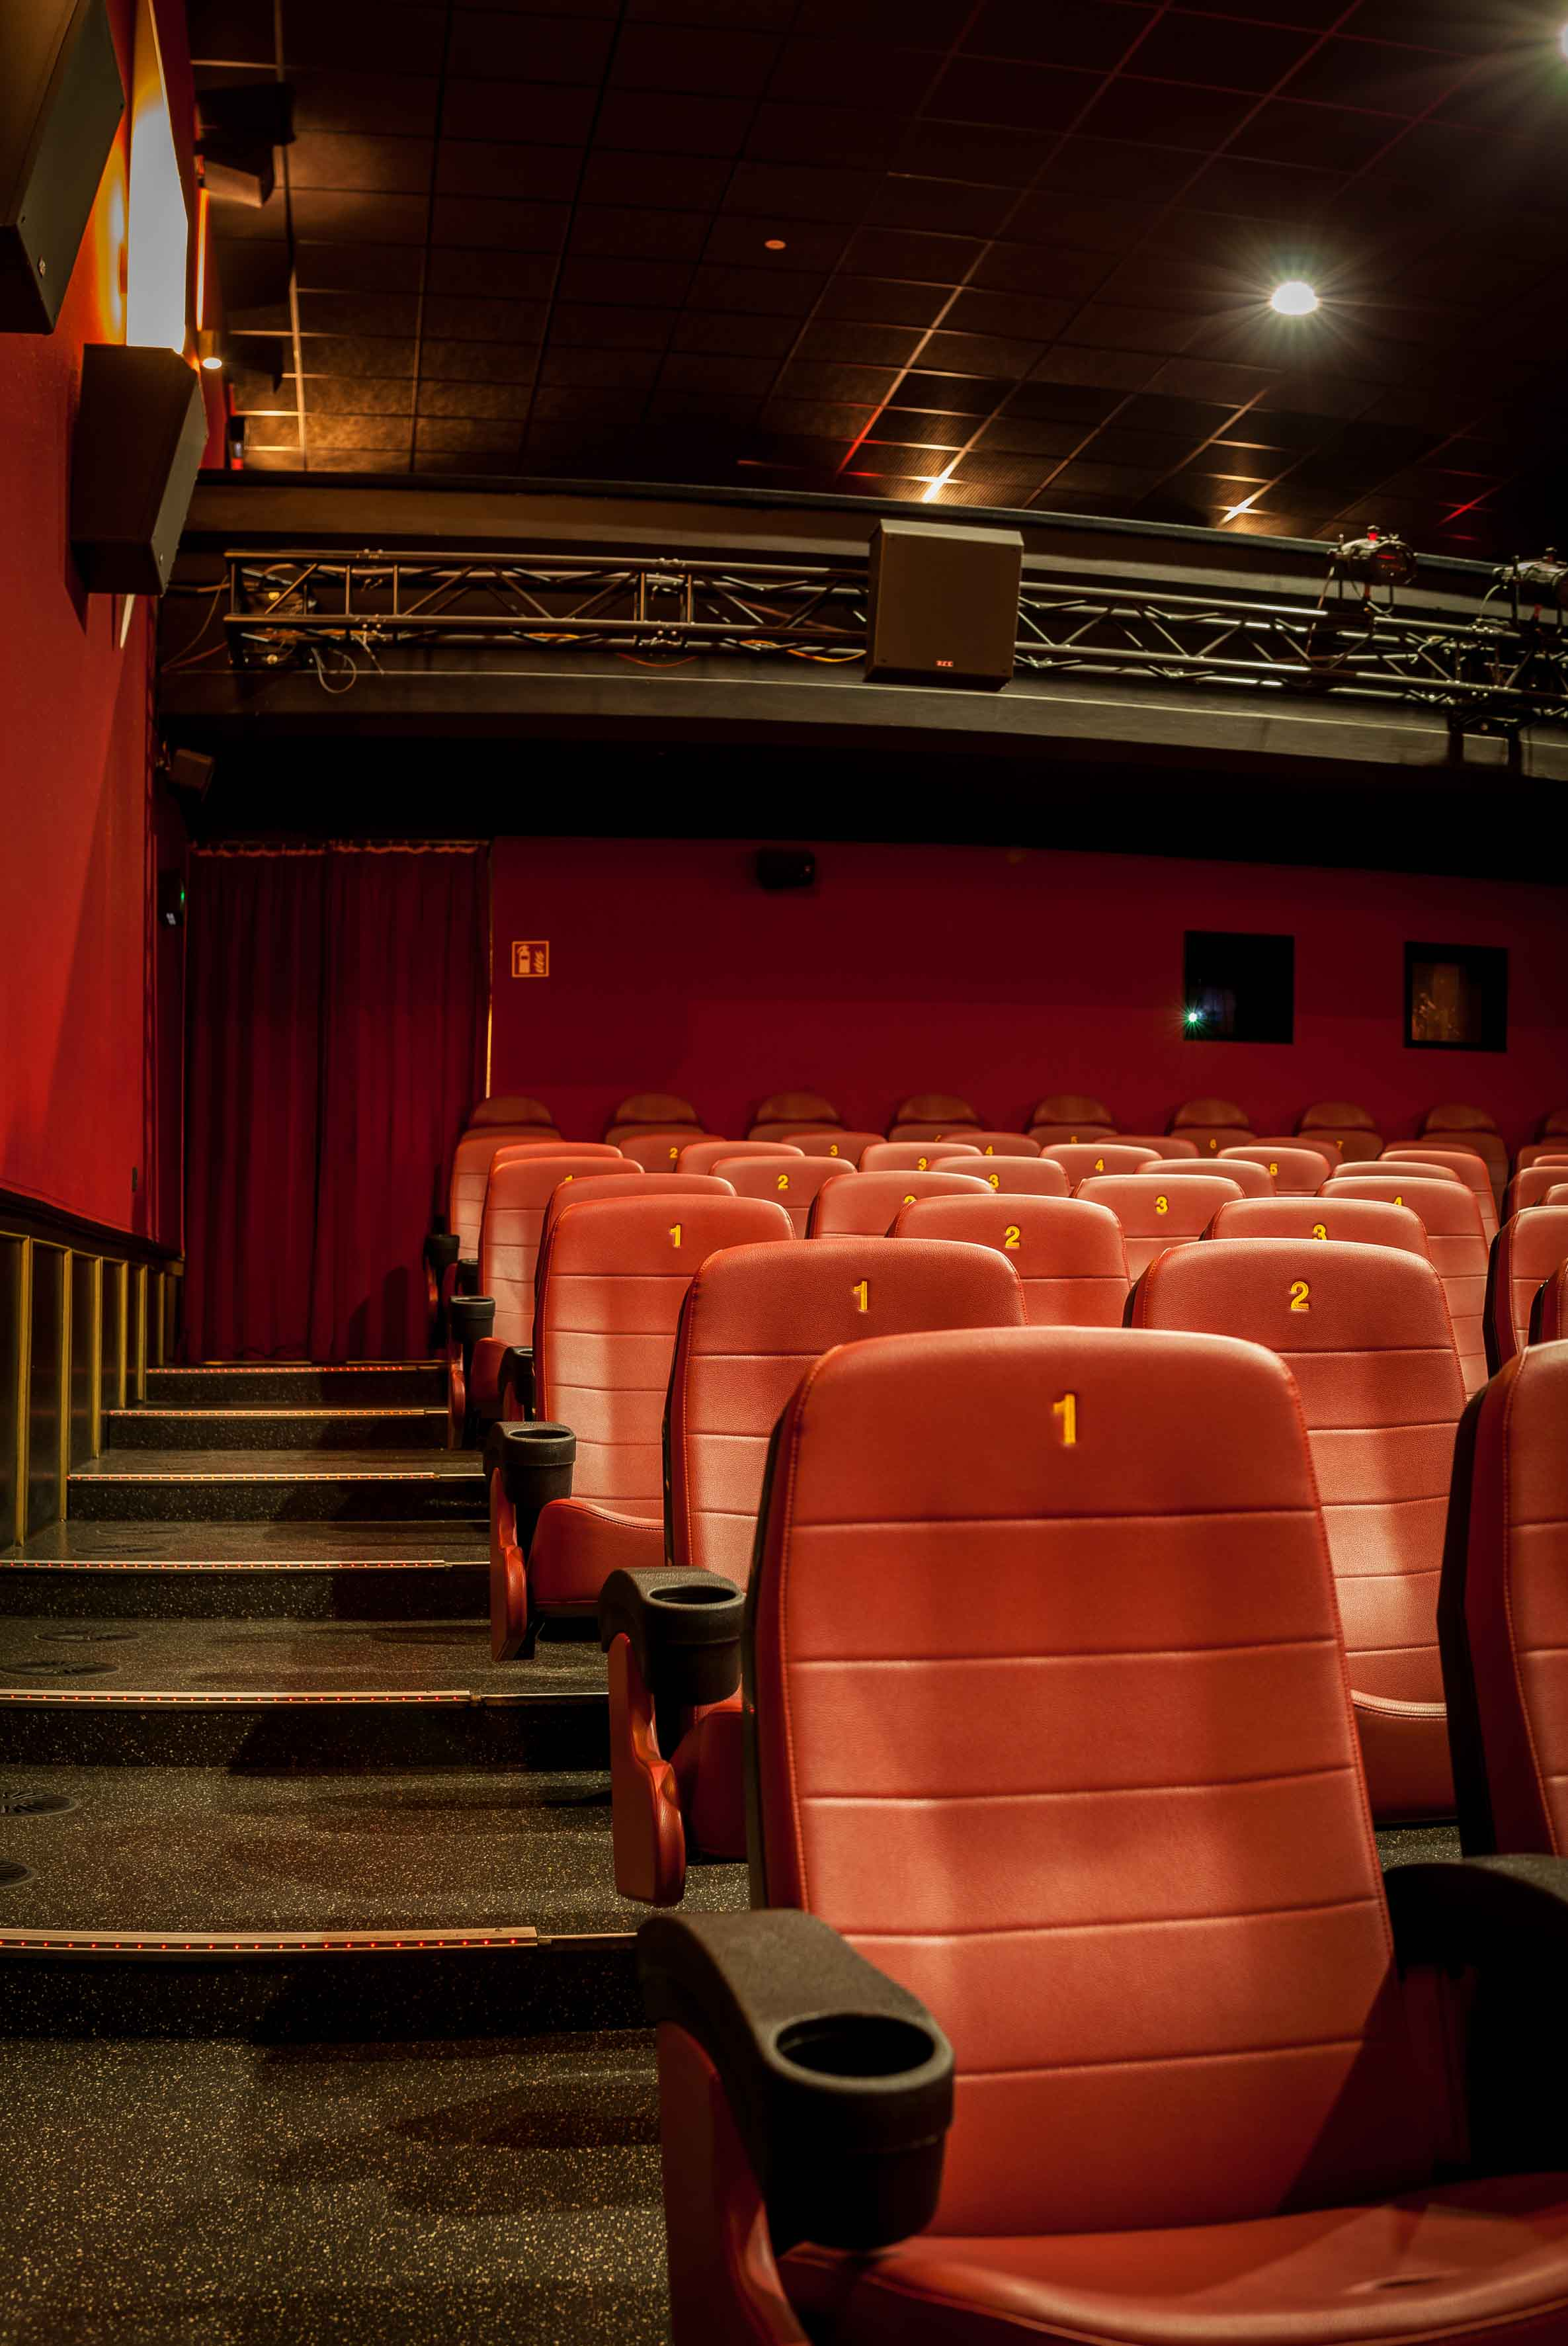 Modernes Theater